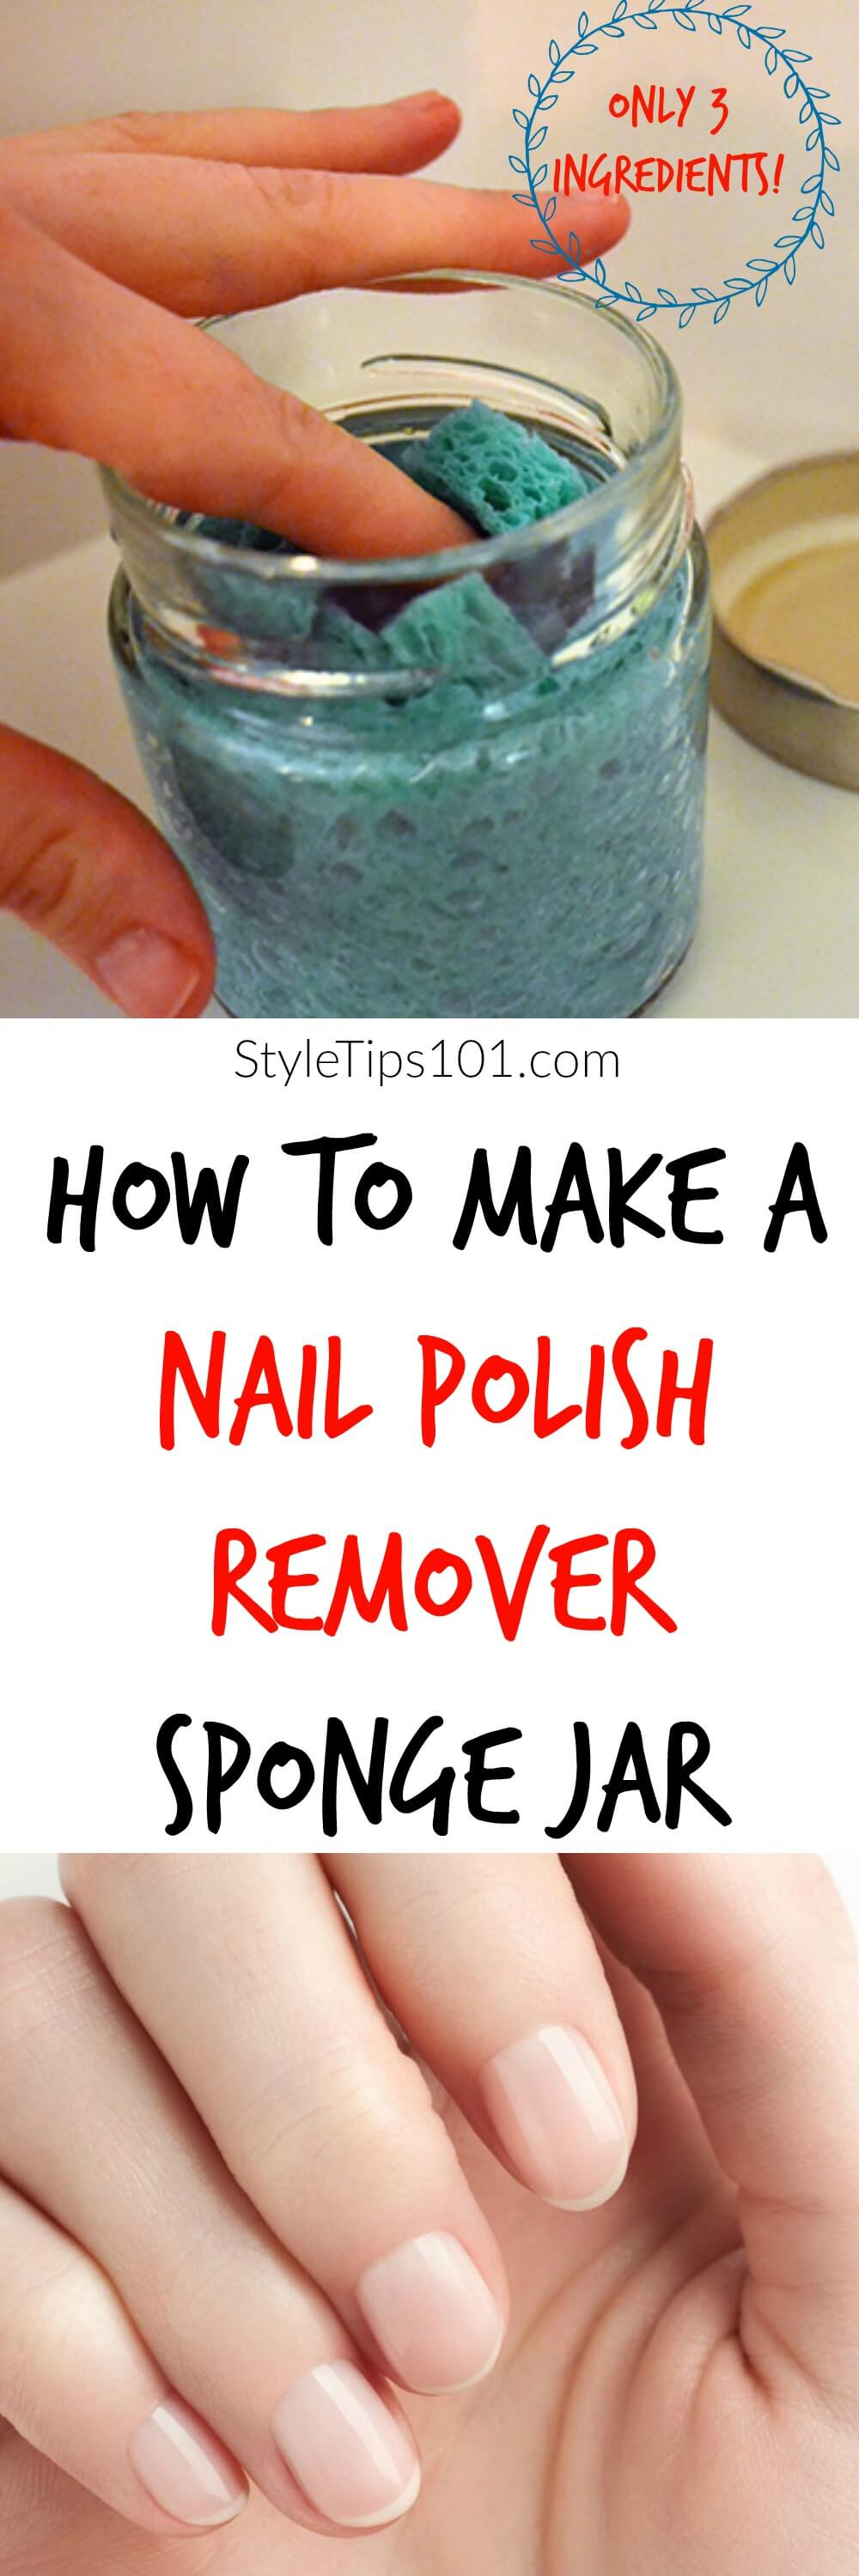 With only 3 ingredients, this DIY nail polish remover sponge will be the easiest and fastest DIY beauty project you\'ve ever made!